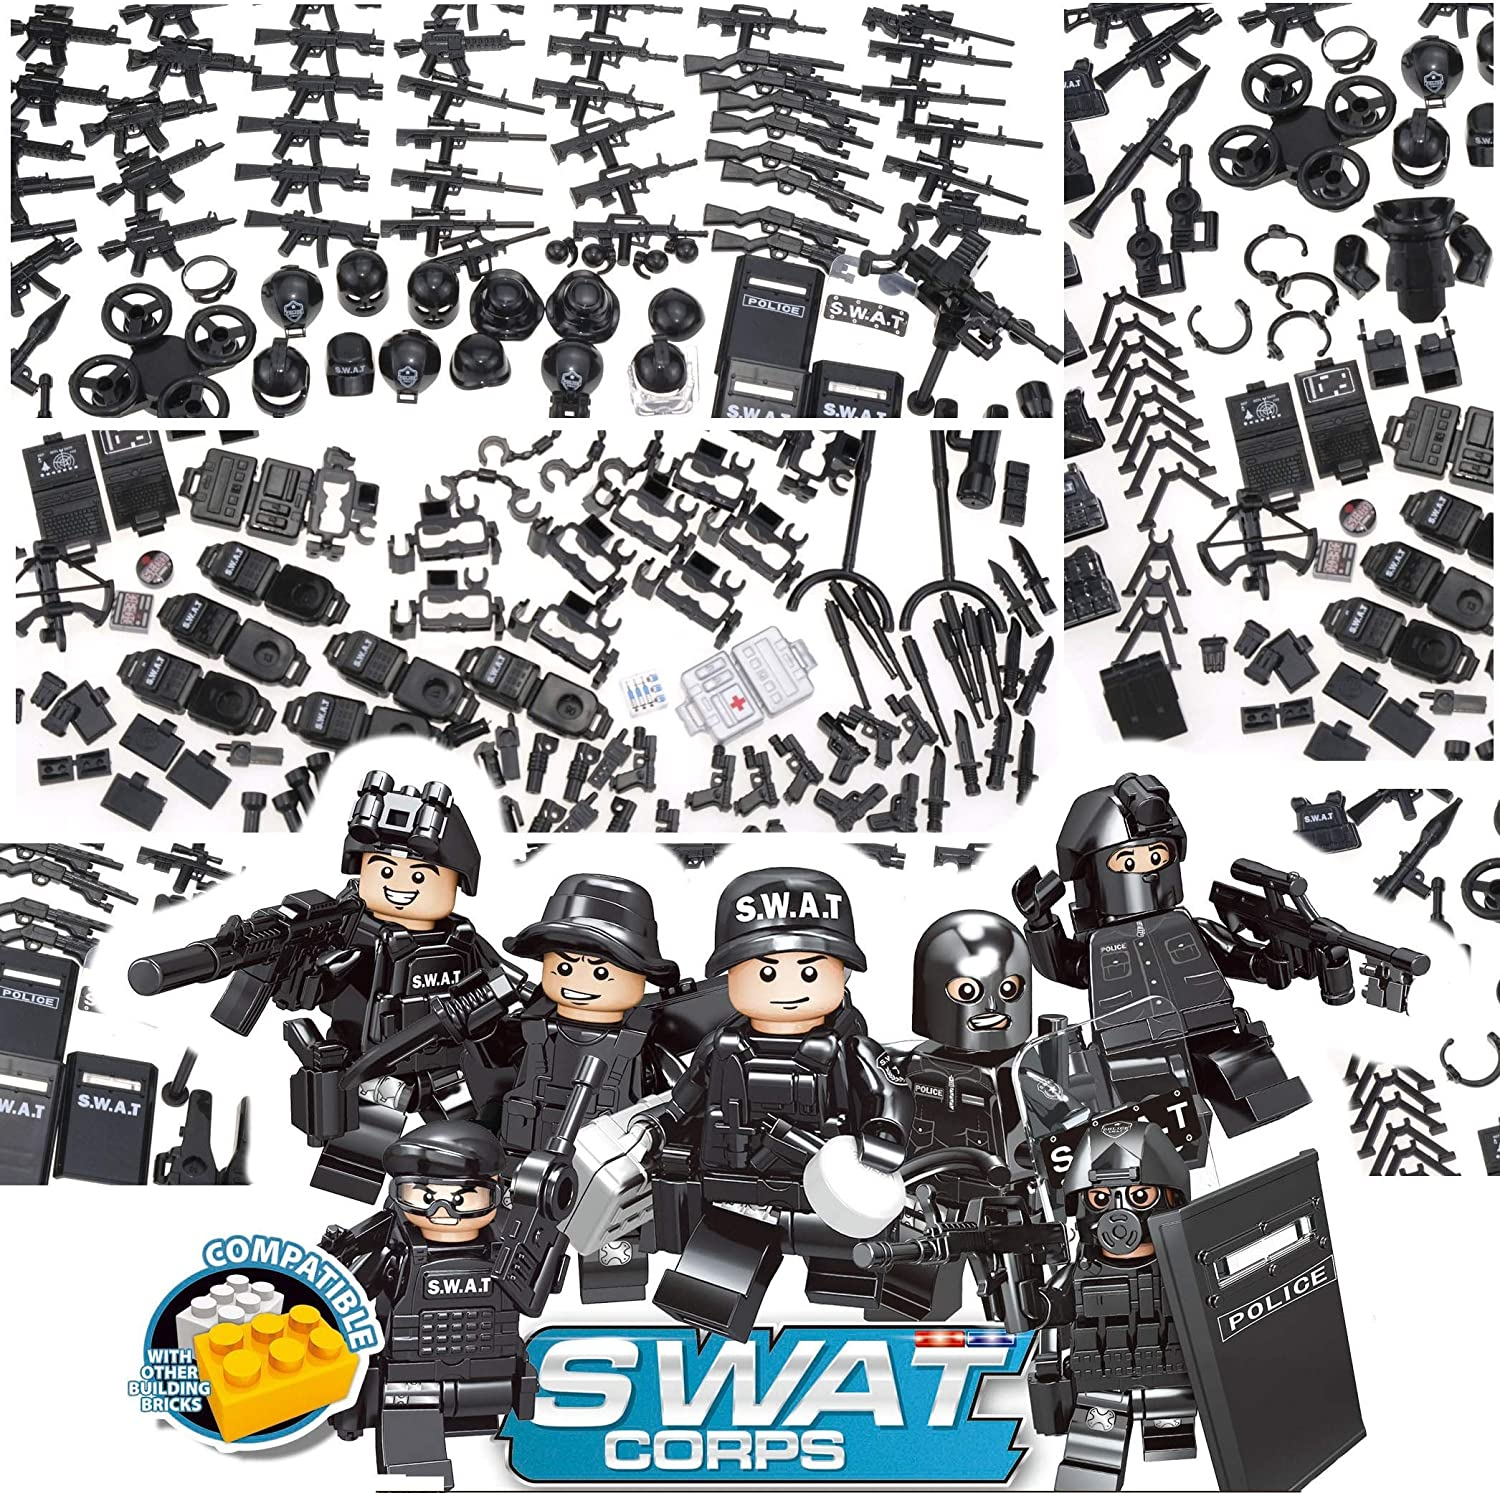 SWAT Special Forces Heavy Armor Juggernaut 5 Squad Custom Minifigures USA SELL